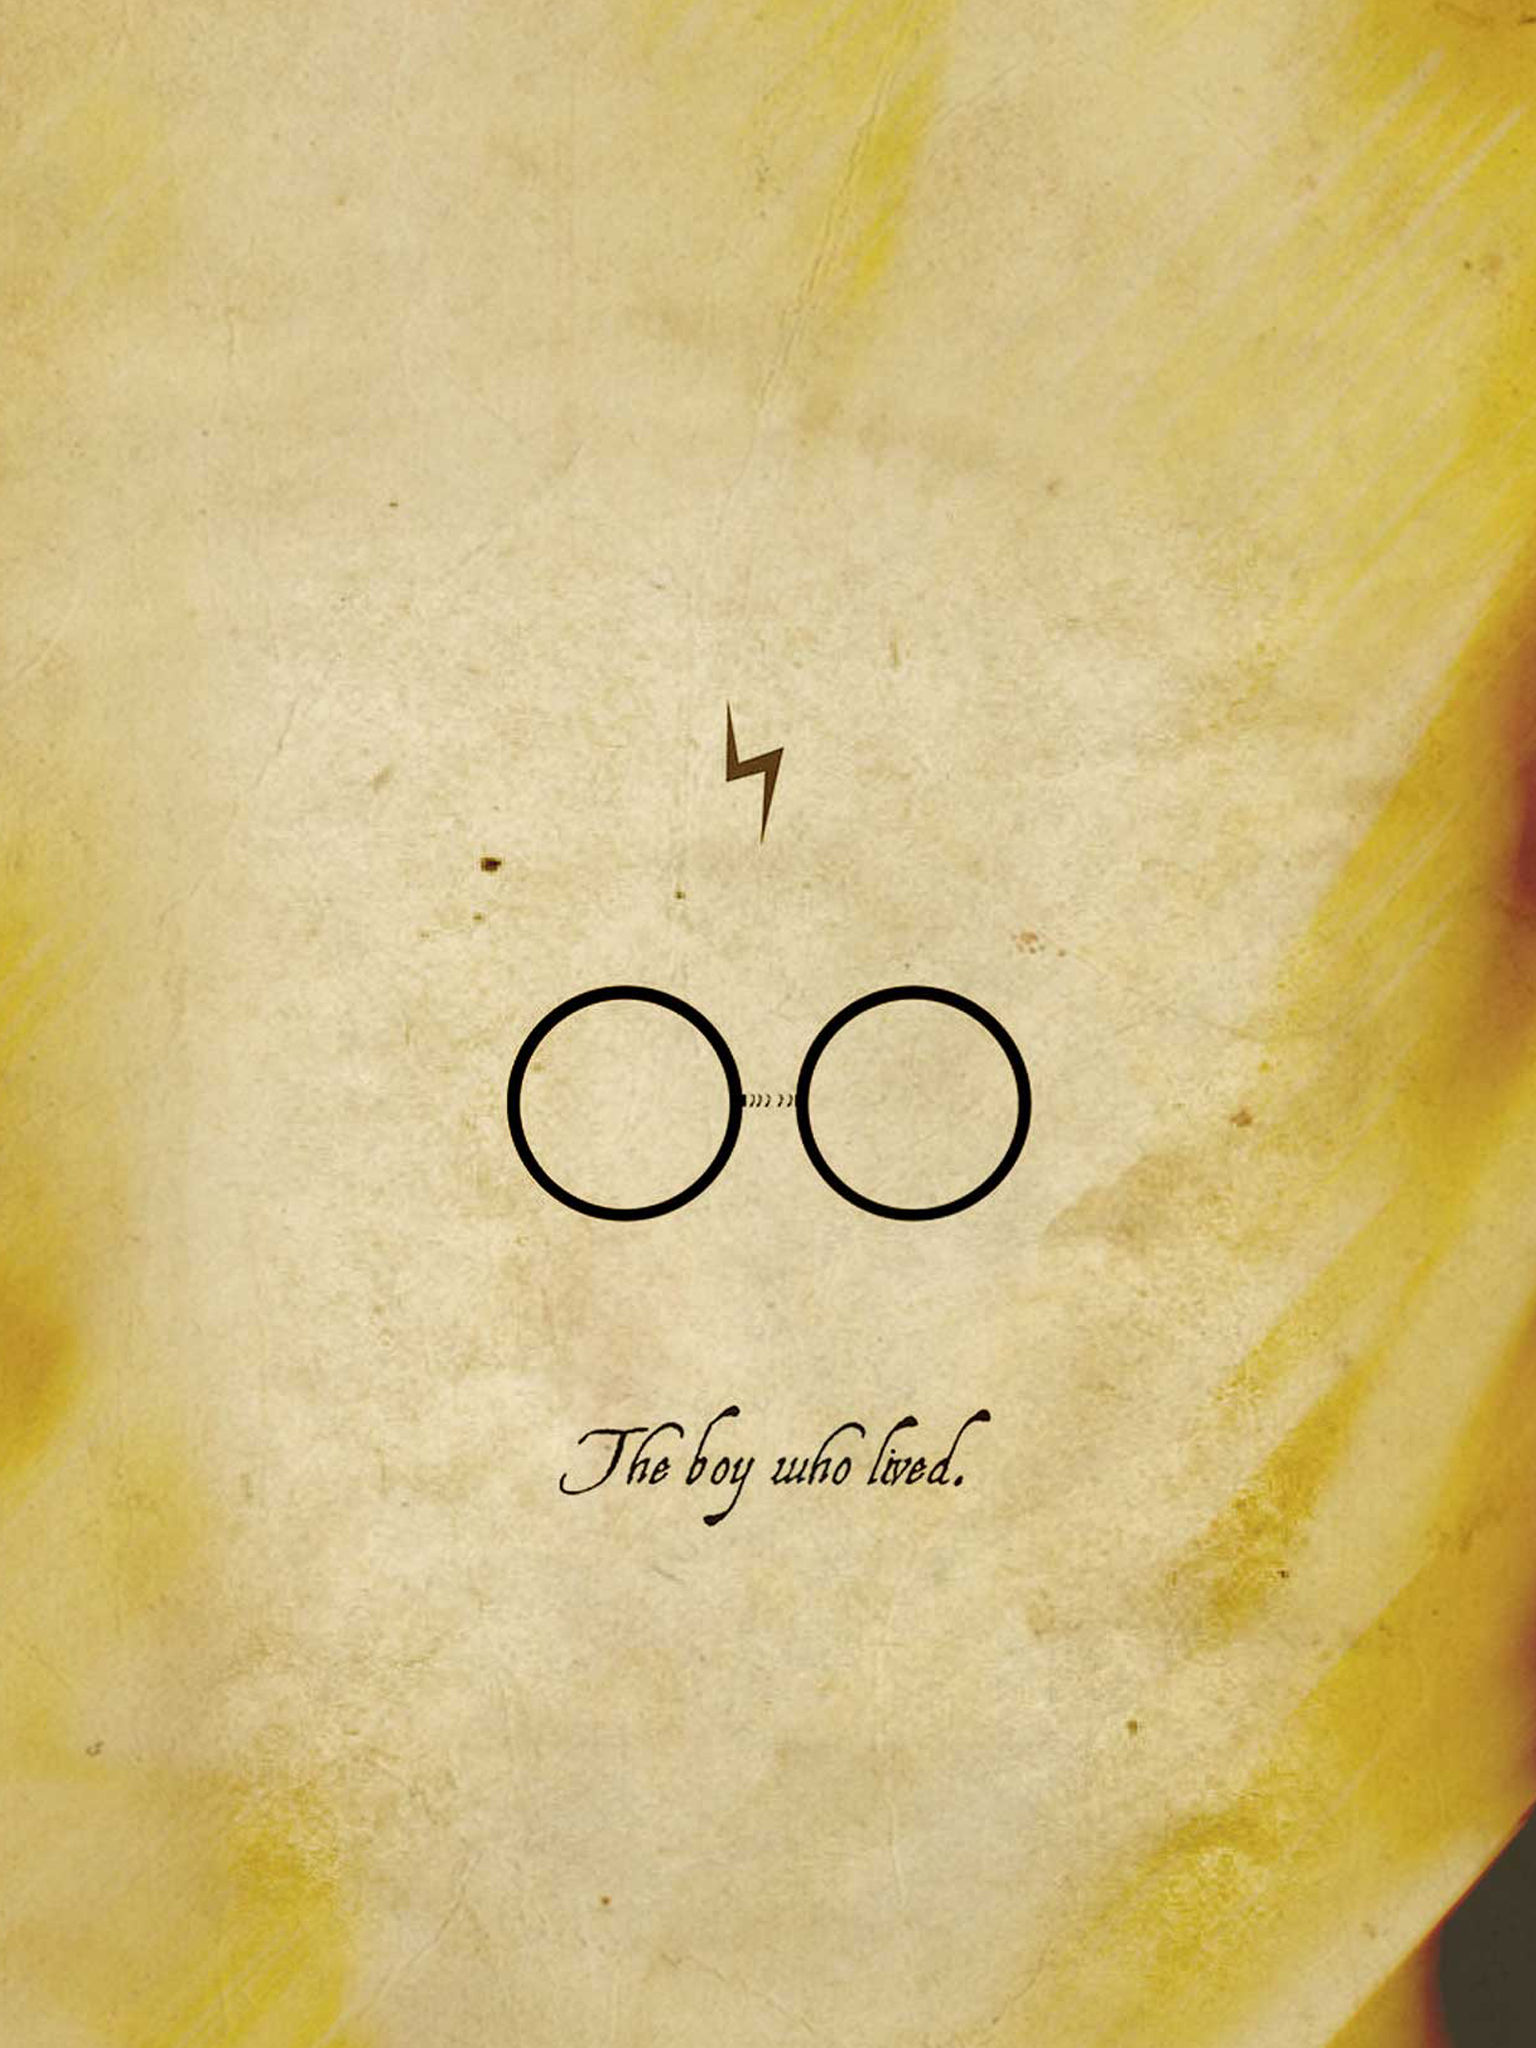 Harry potter wallpaper yellow